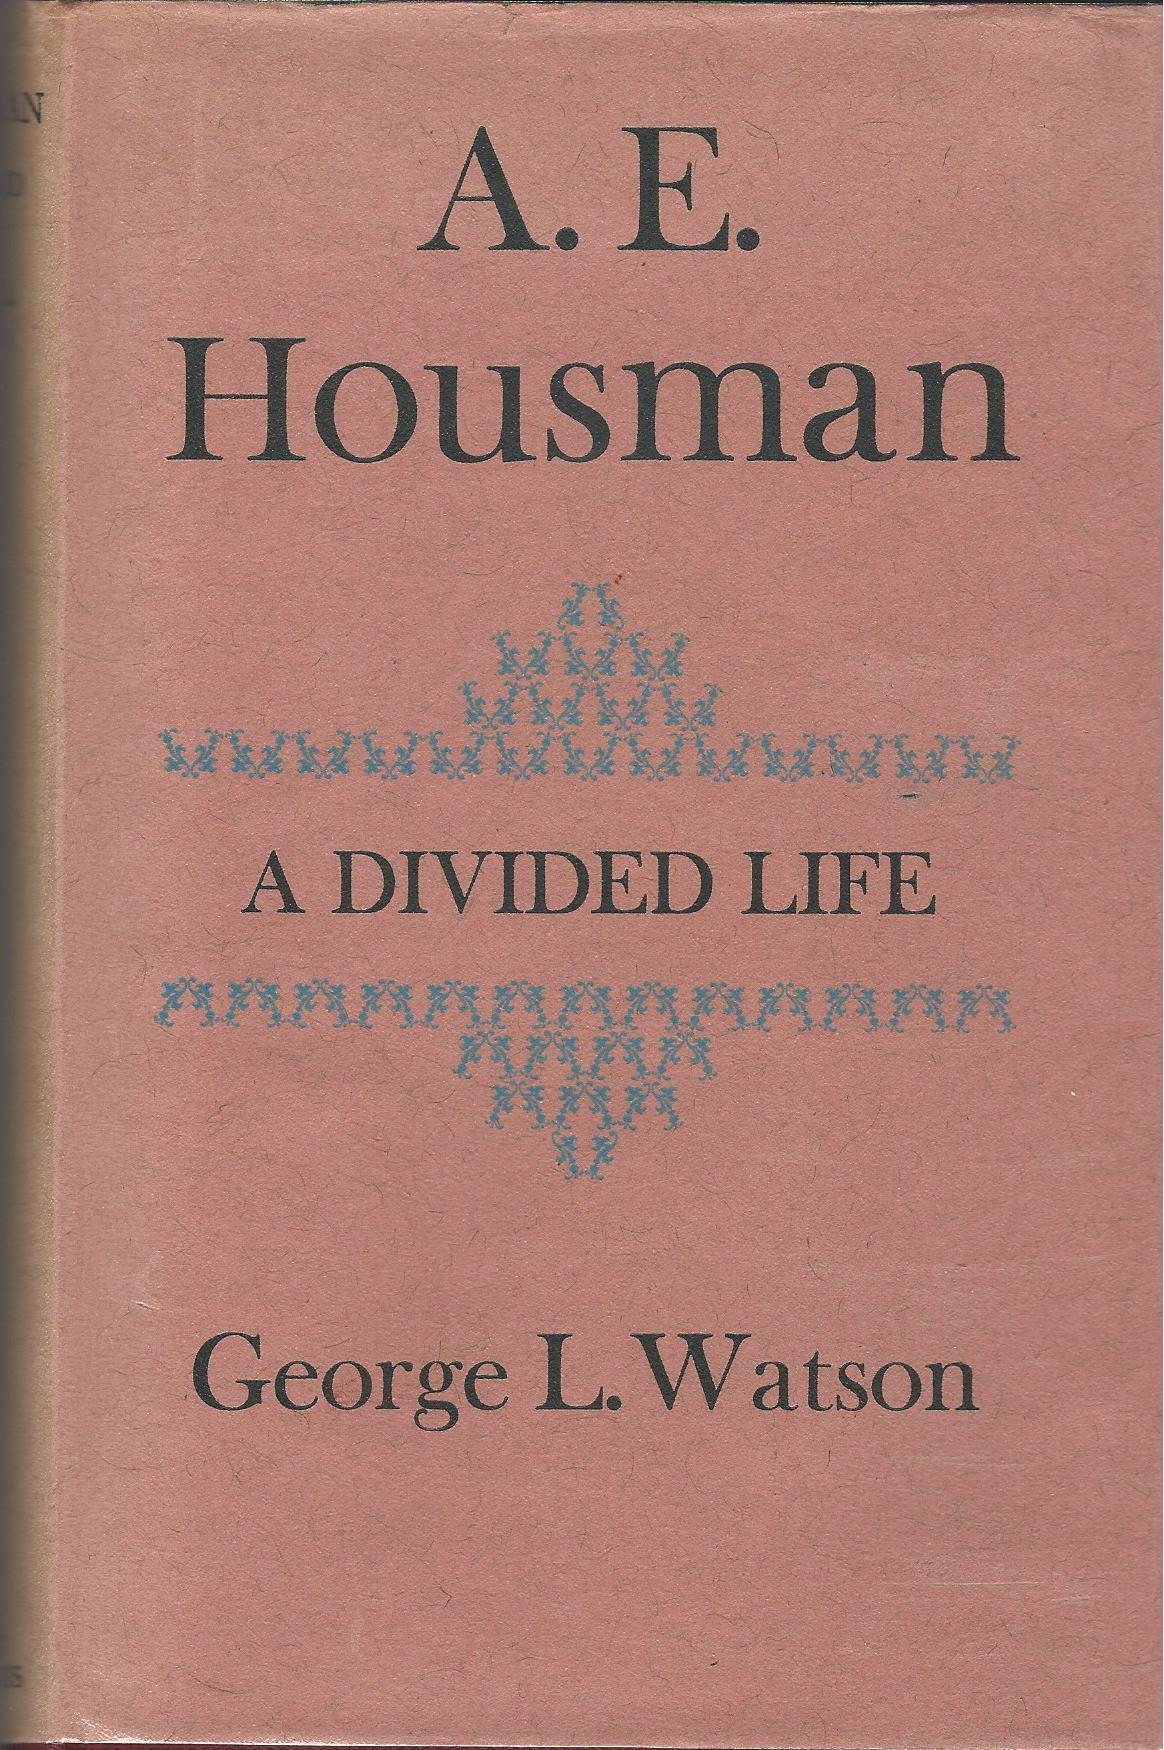 Image for A.E. Houseman, A Divided Life.